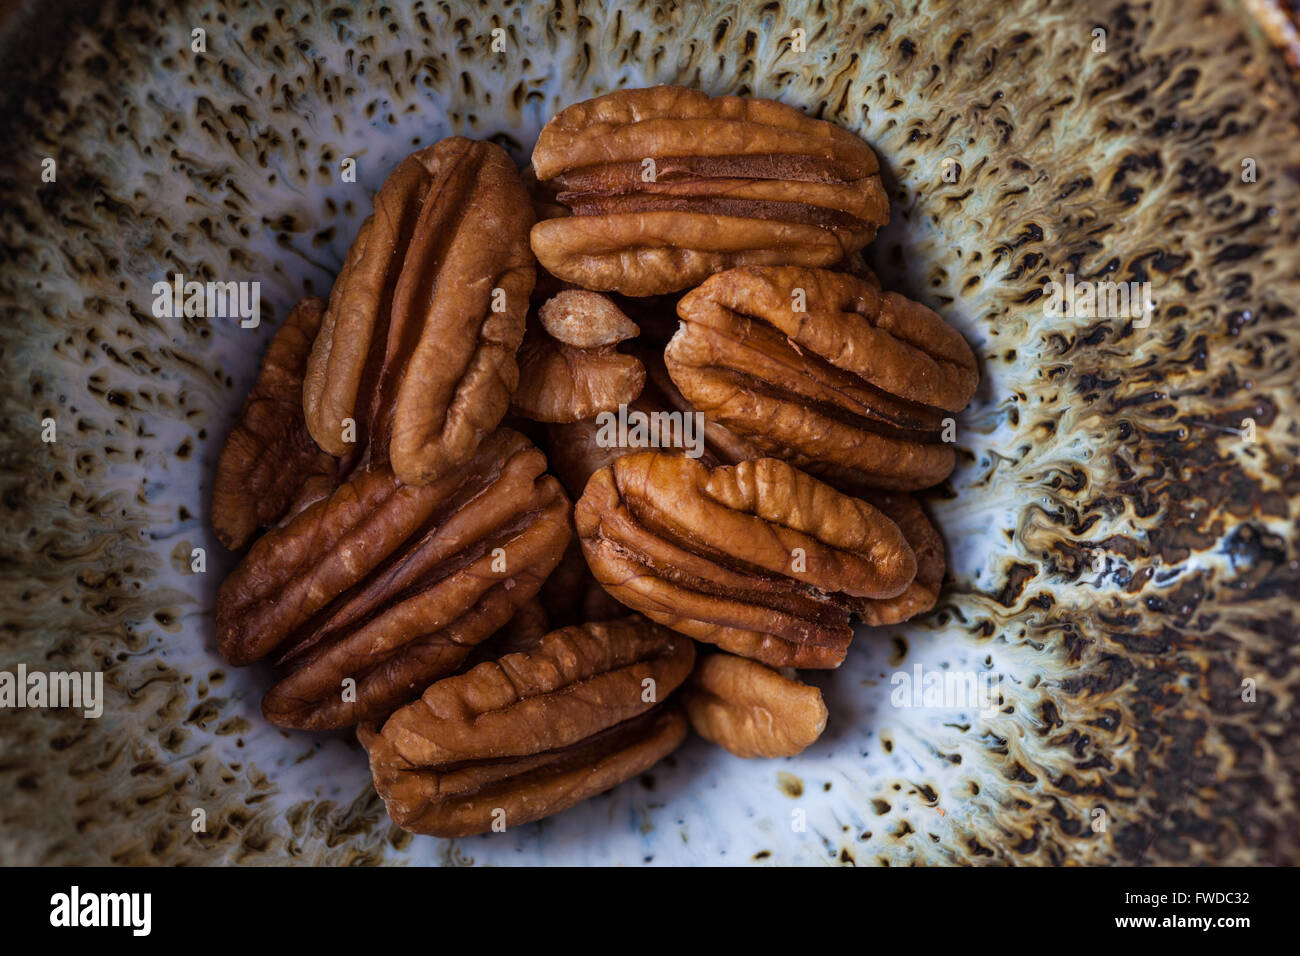 Pecans in handmade ceramic bowl extreme closeup, top view. - Stock Image